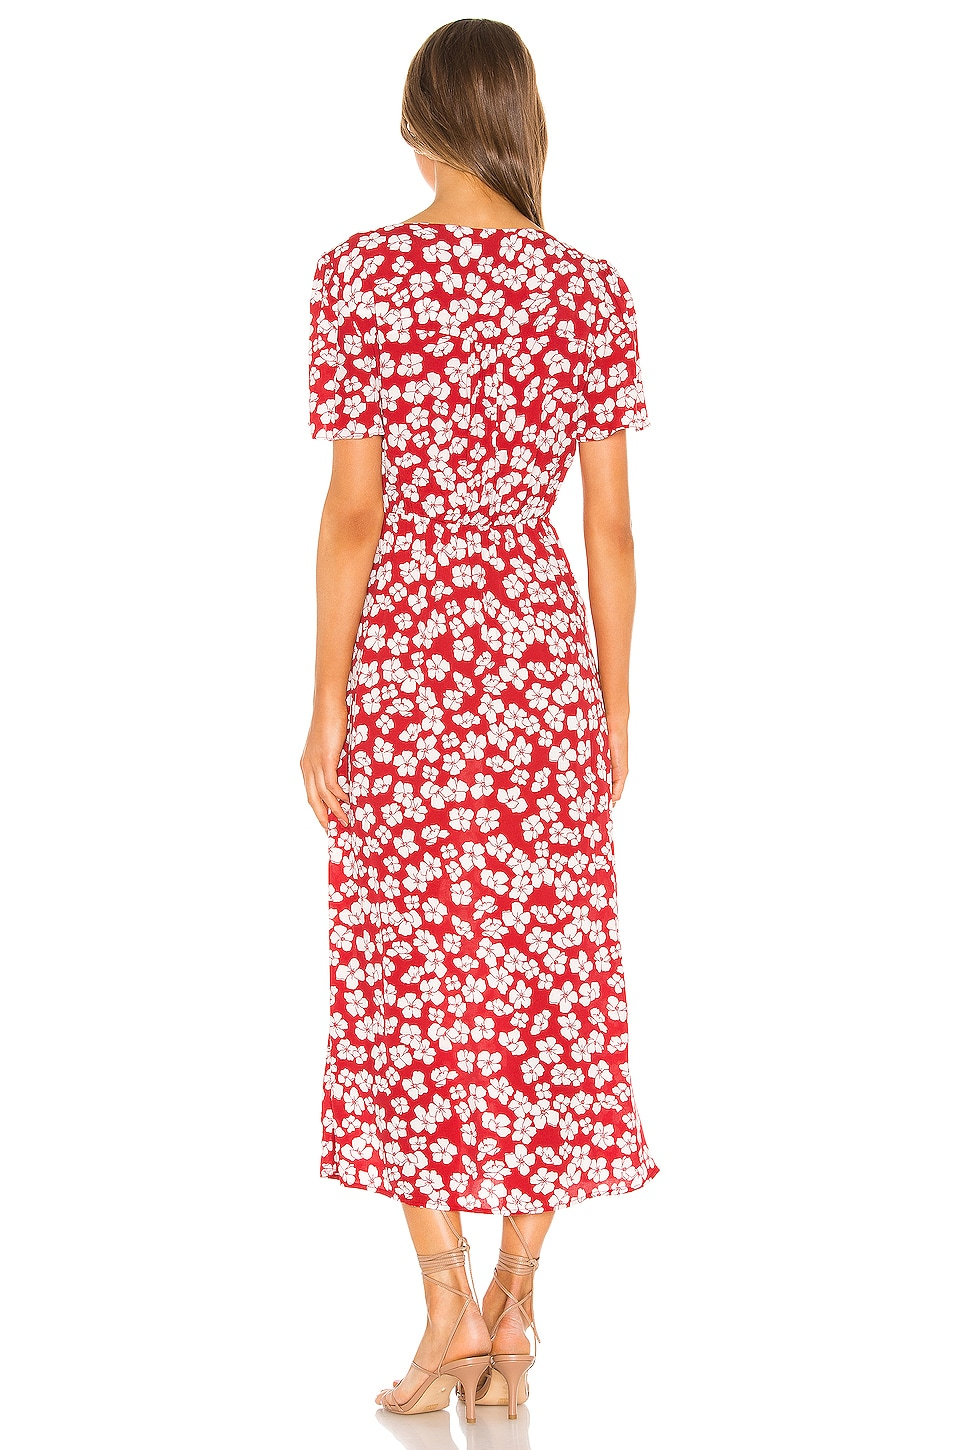 Between You And I Midi Dress, view 3, click to view large image.